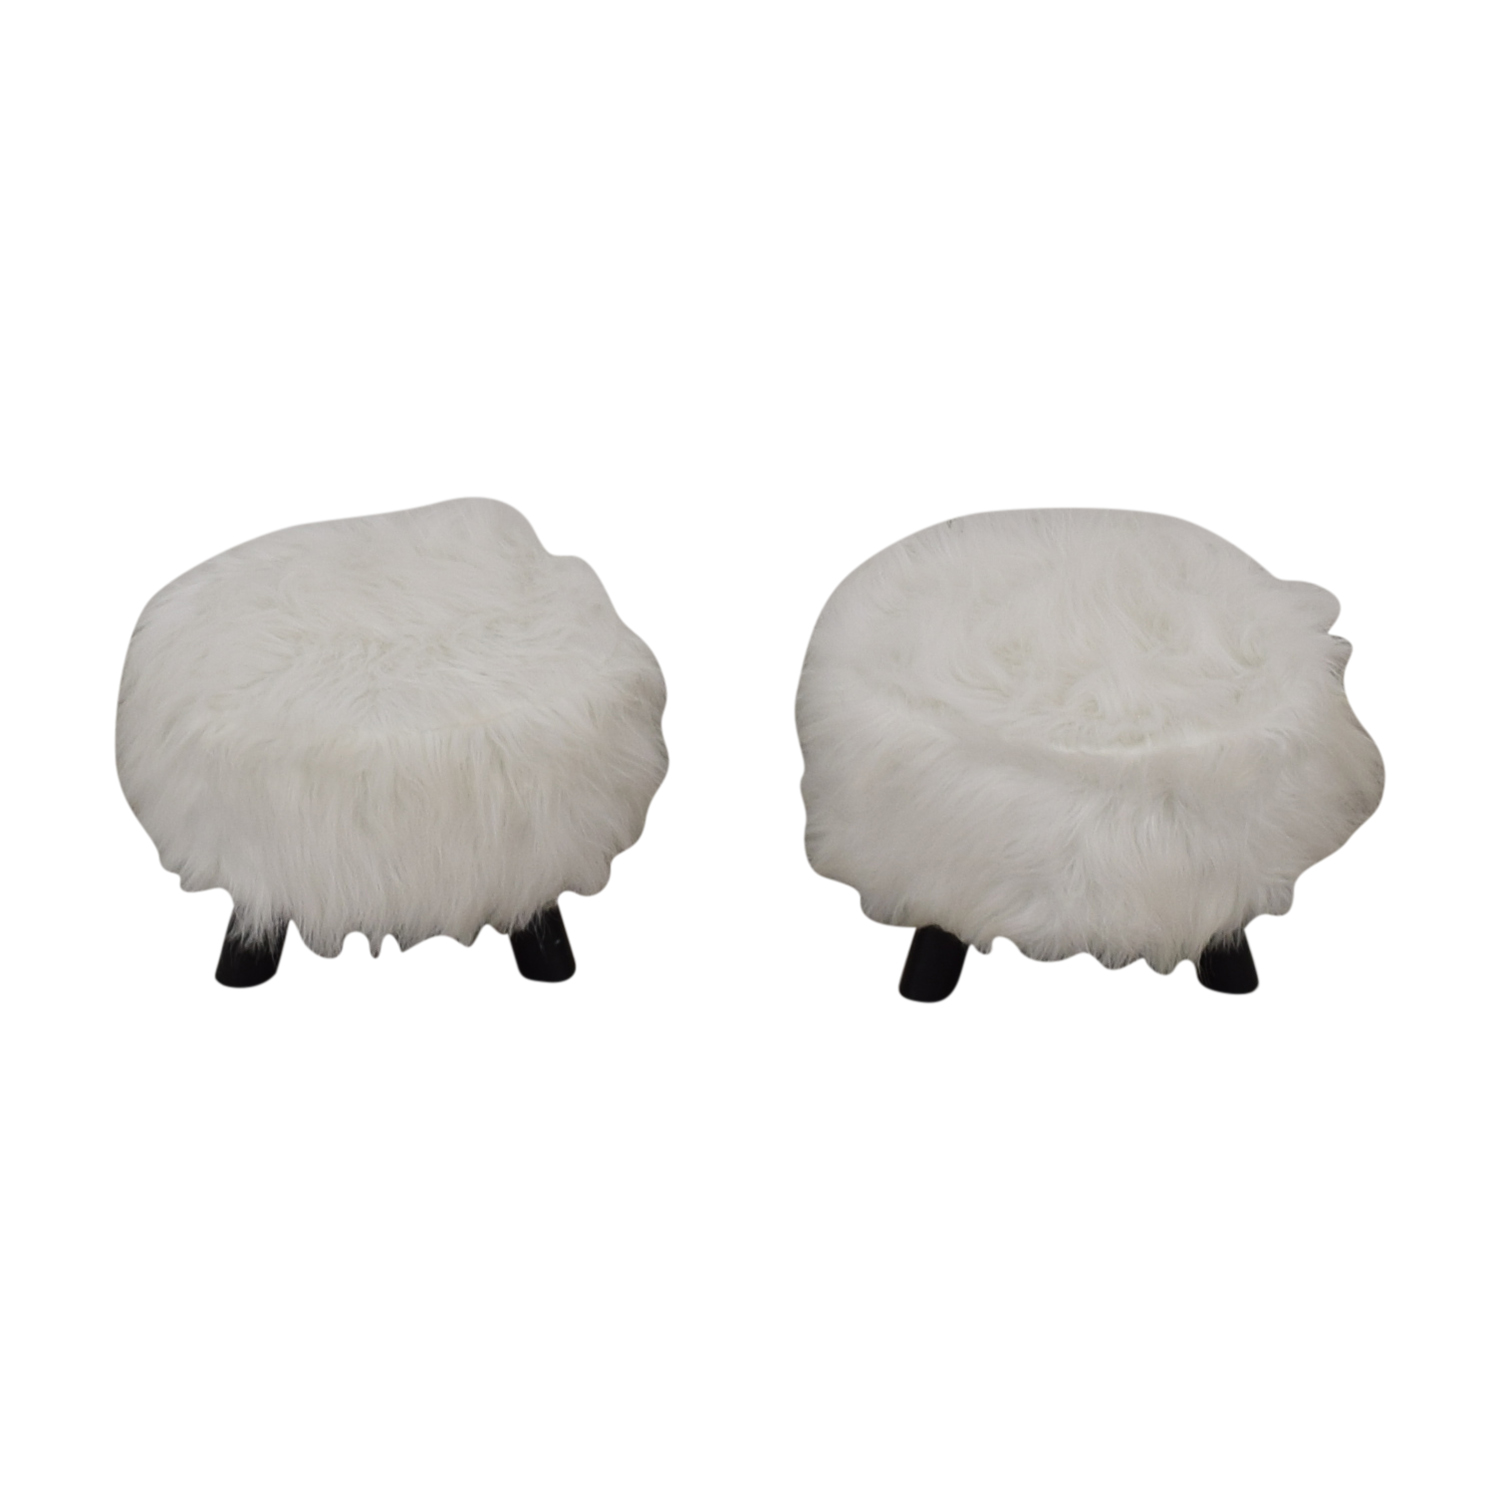 Small Fur Footstools for sale